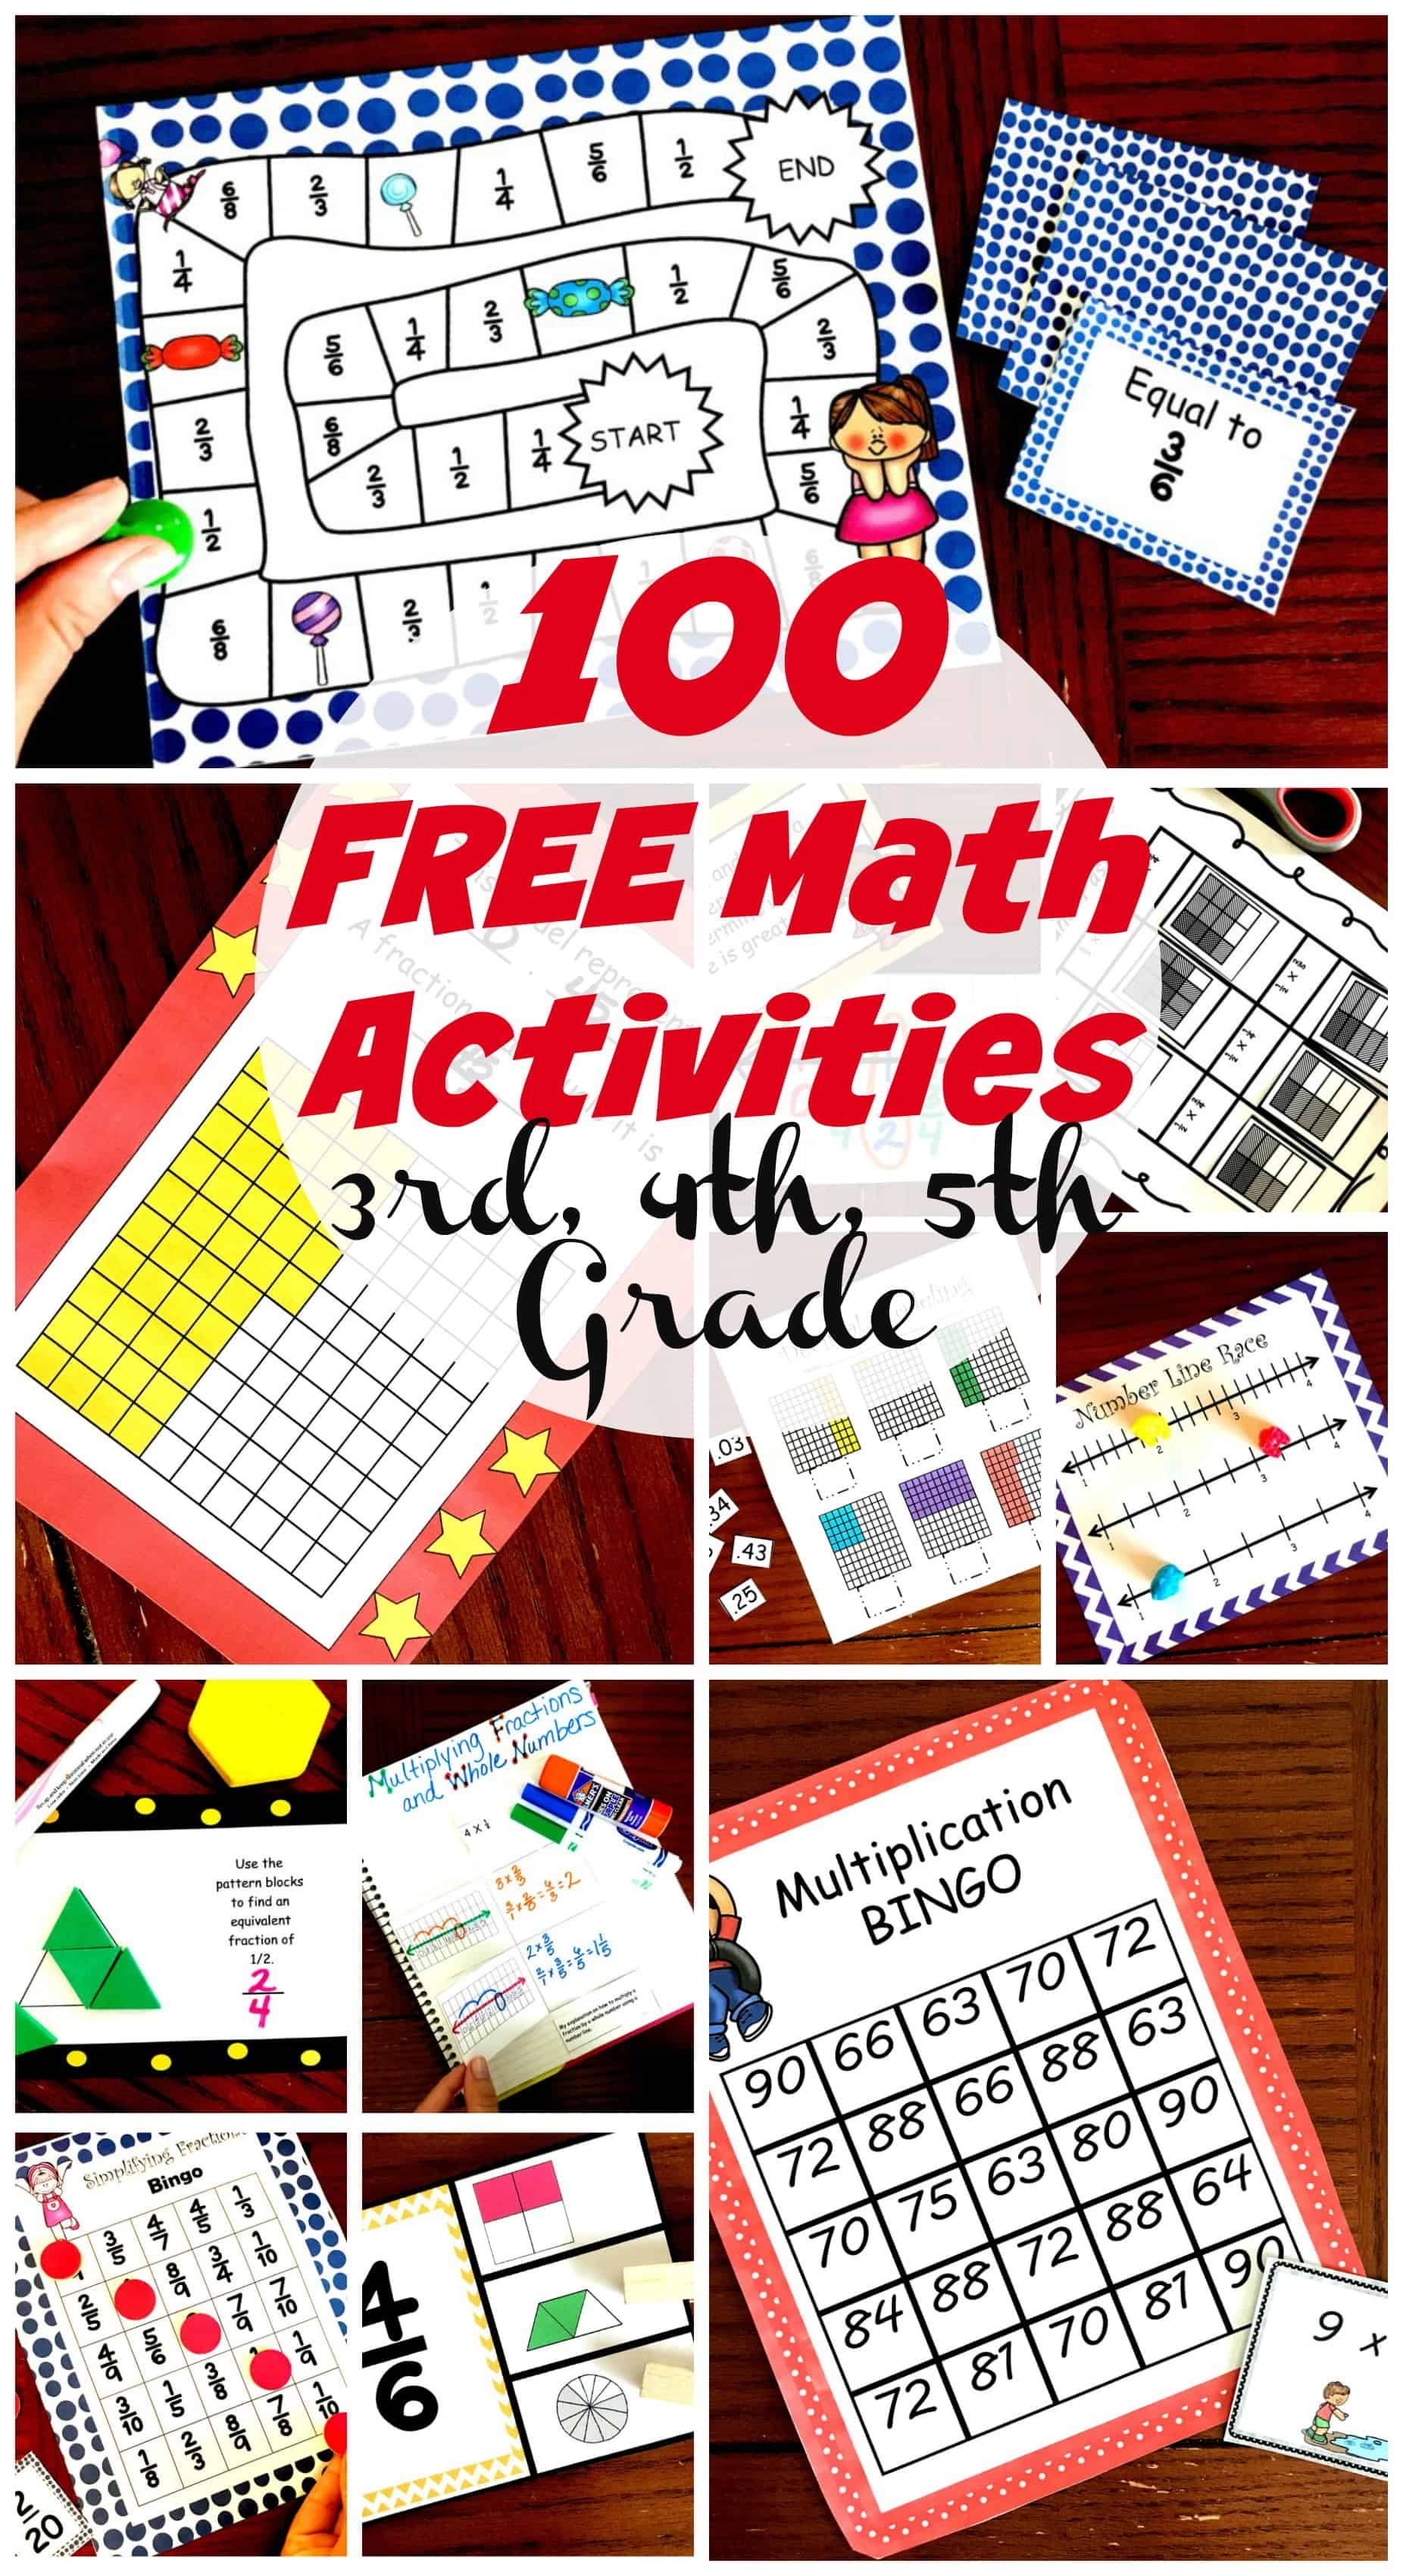 photo relating to Dividing Fractions Games Printable referred to as 50 Astounding and Exciting Math Routines for 3rd, 4th, and 5th